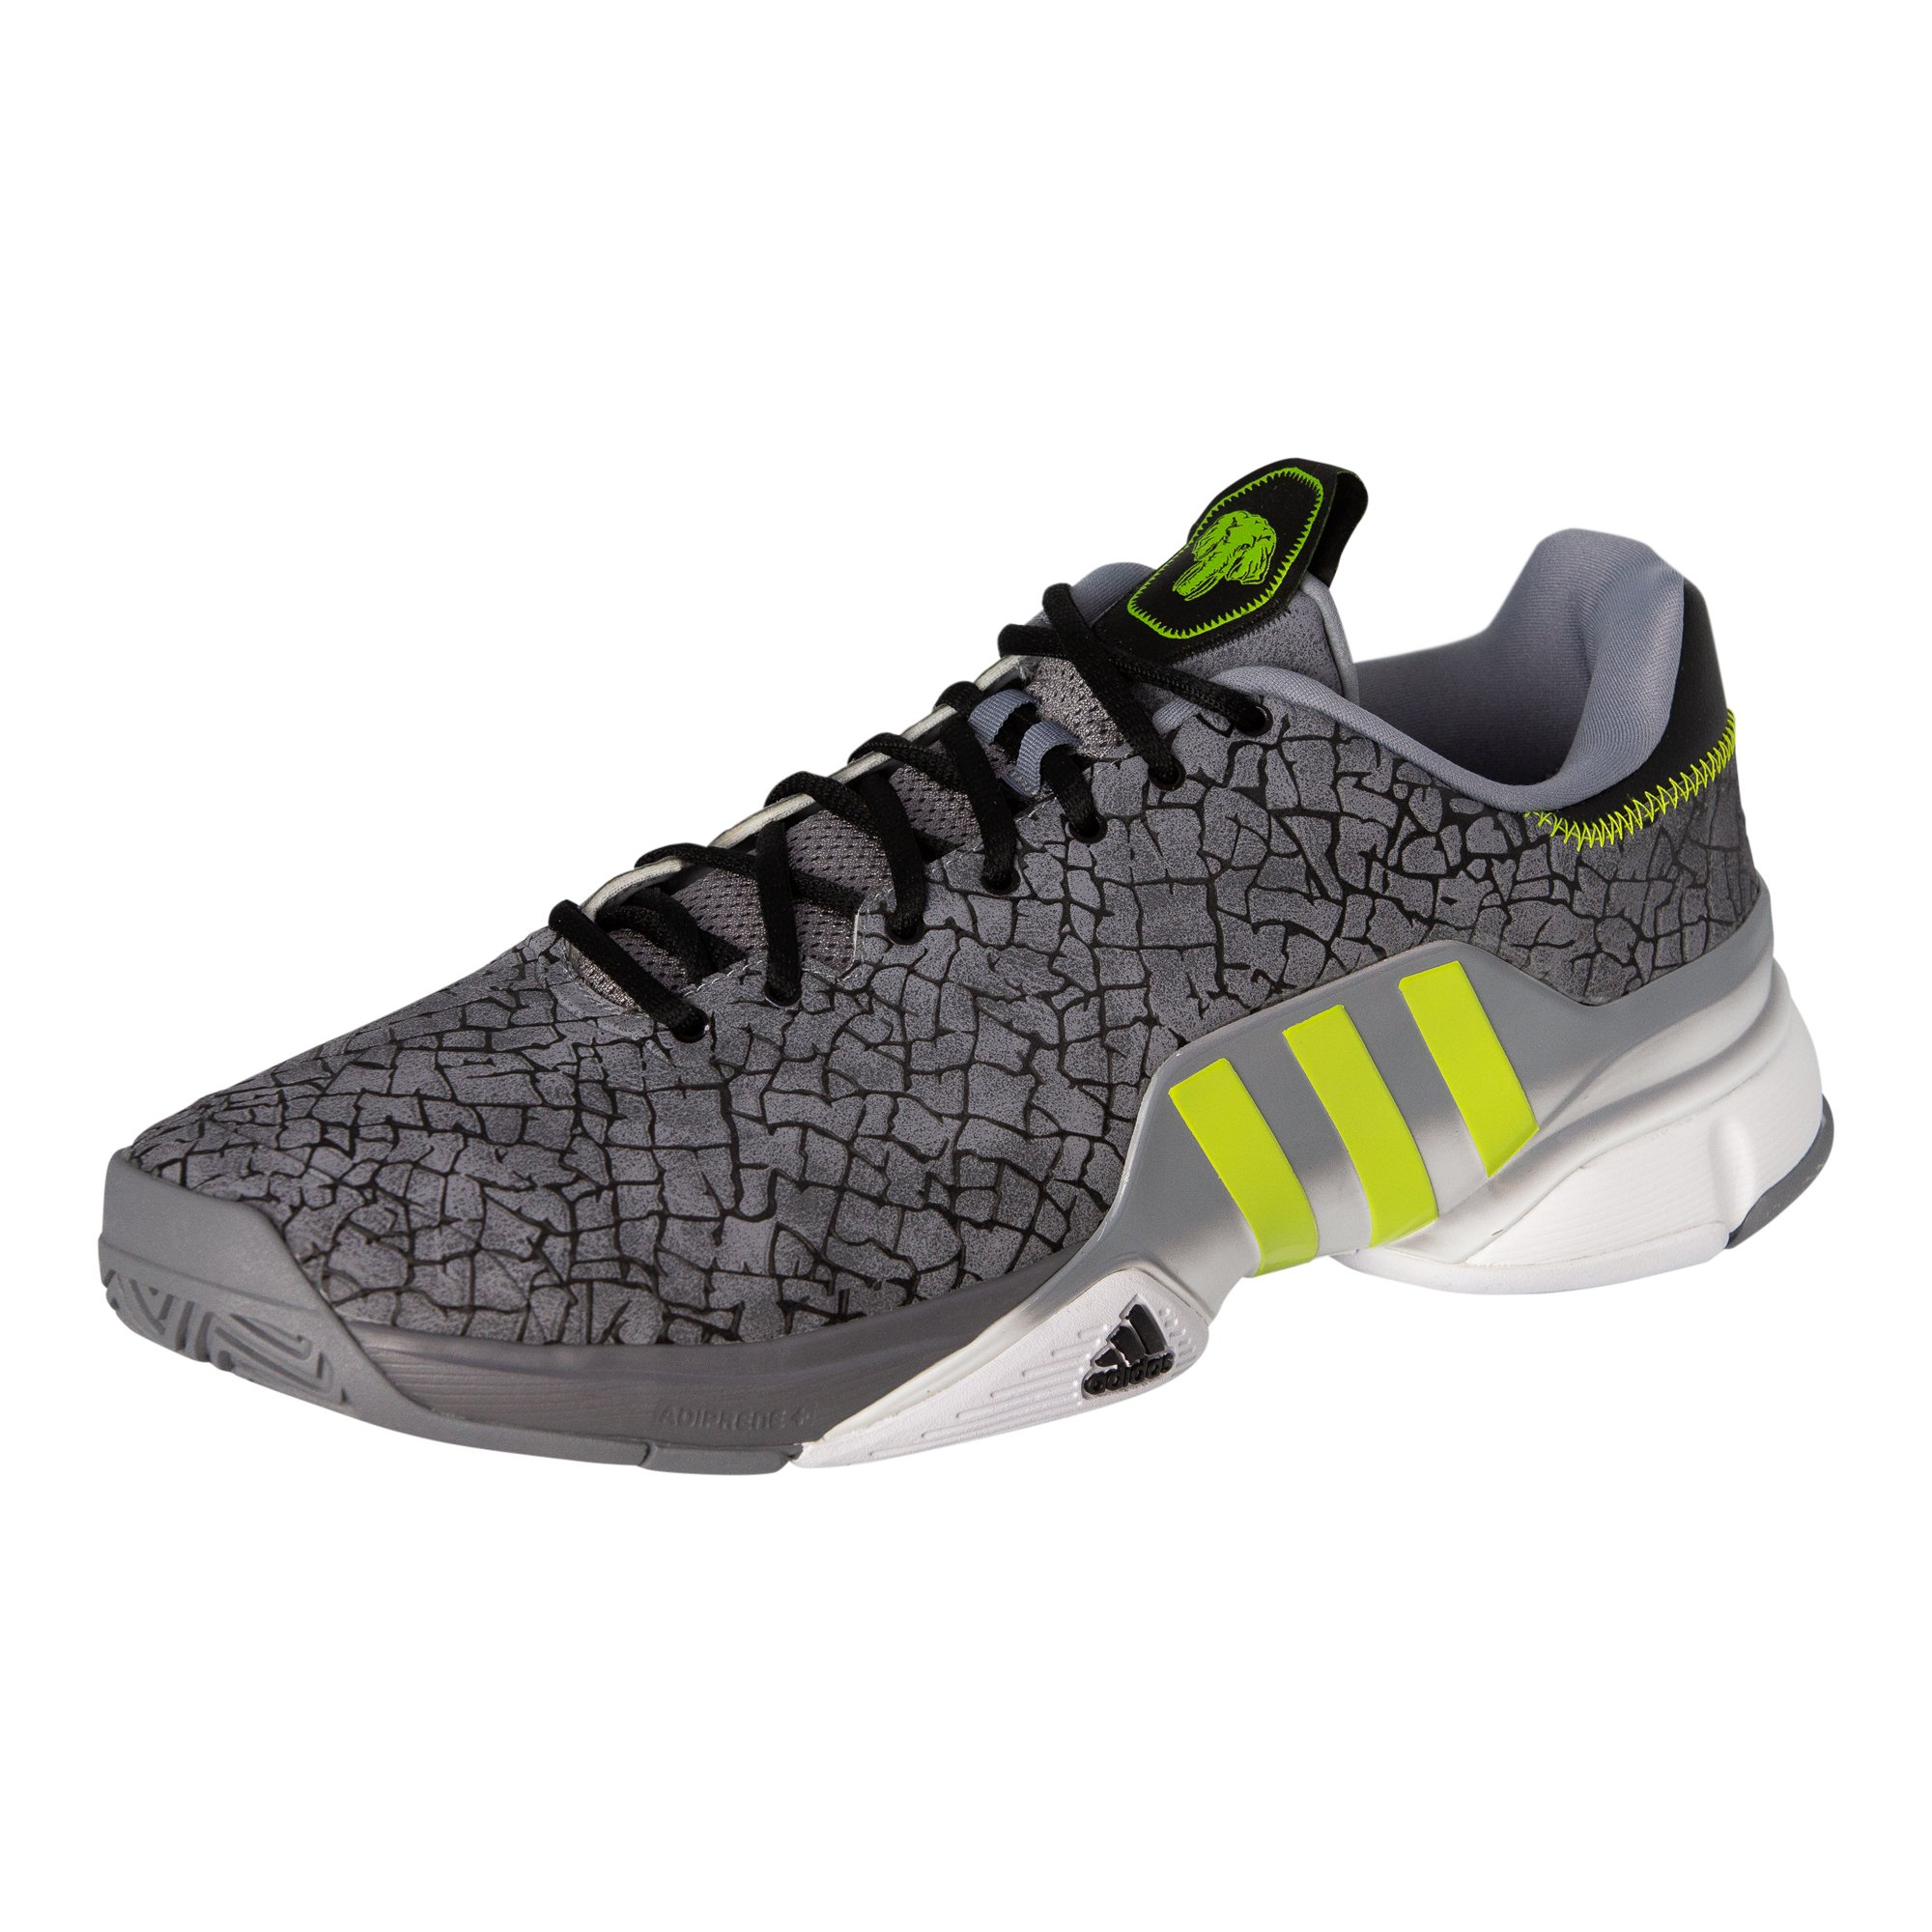 adidas shoes 2016 philippines